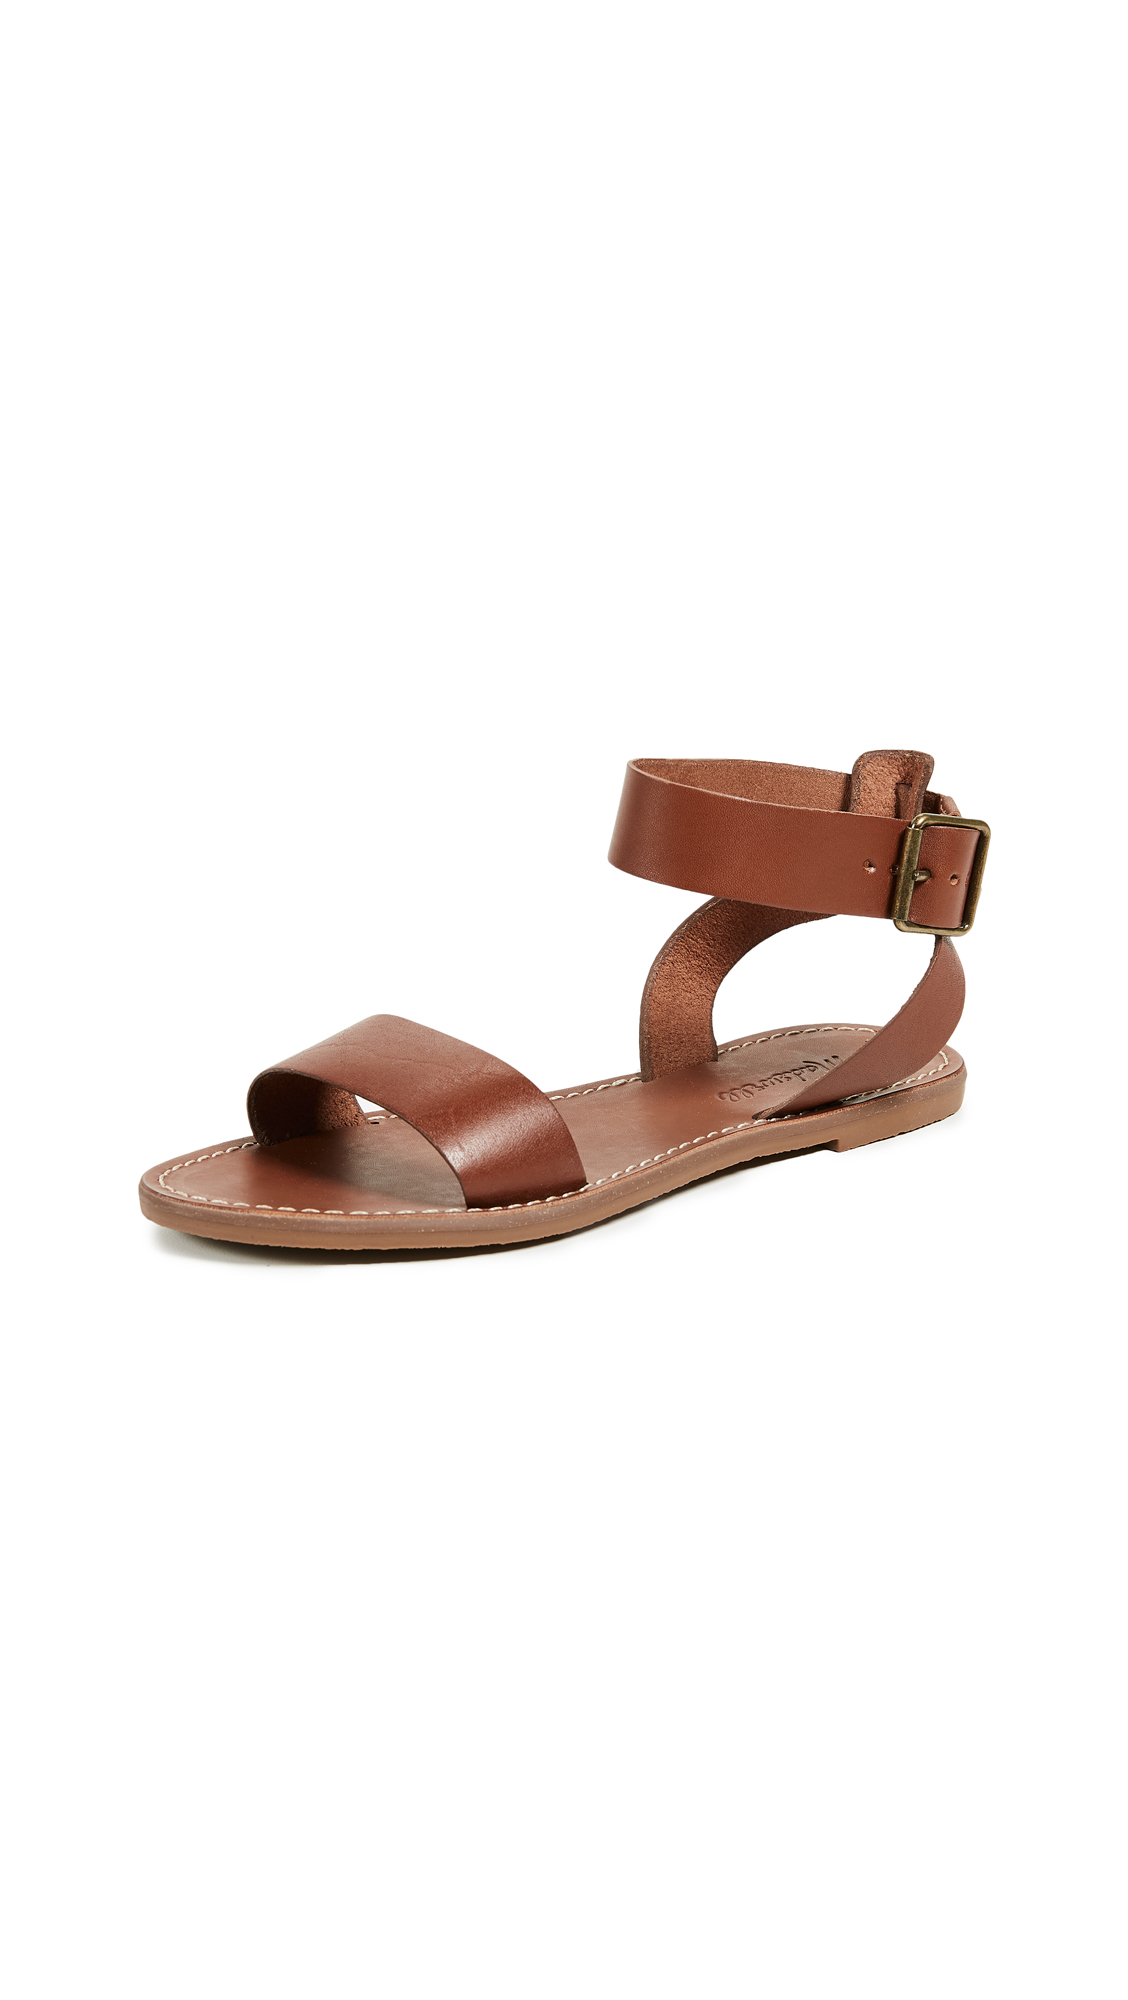 Madewell The Boardwalk Ankle-Strap Sandals - English Saddle